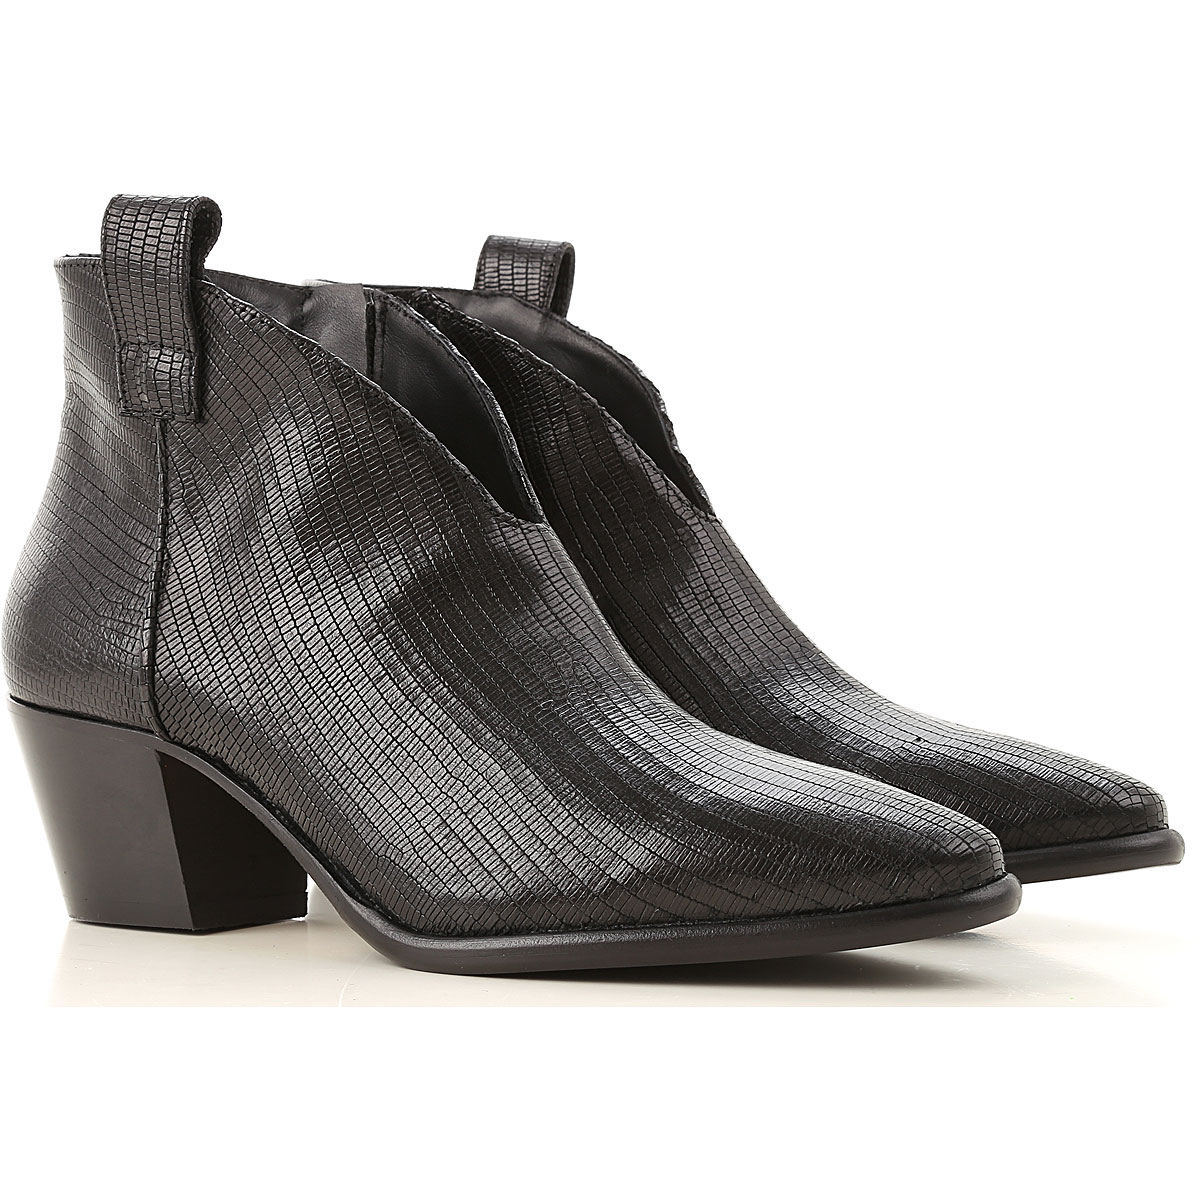 Anna F. Boots for Women, Booties On Sale, Black, Leather, 2019, 11 6 6.5 9.5